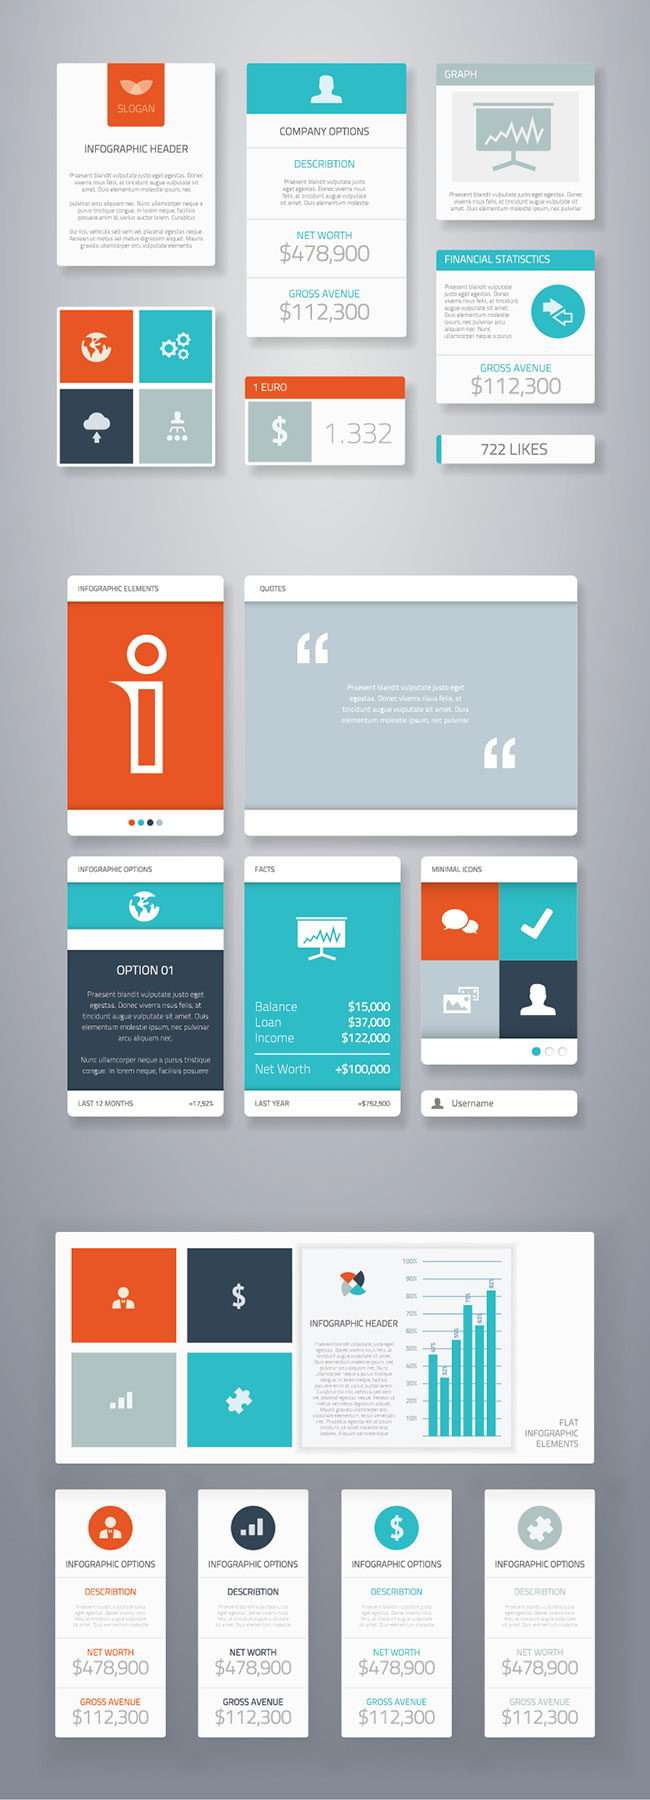 19 Flat Ui Infographic Vector Elements